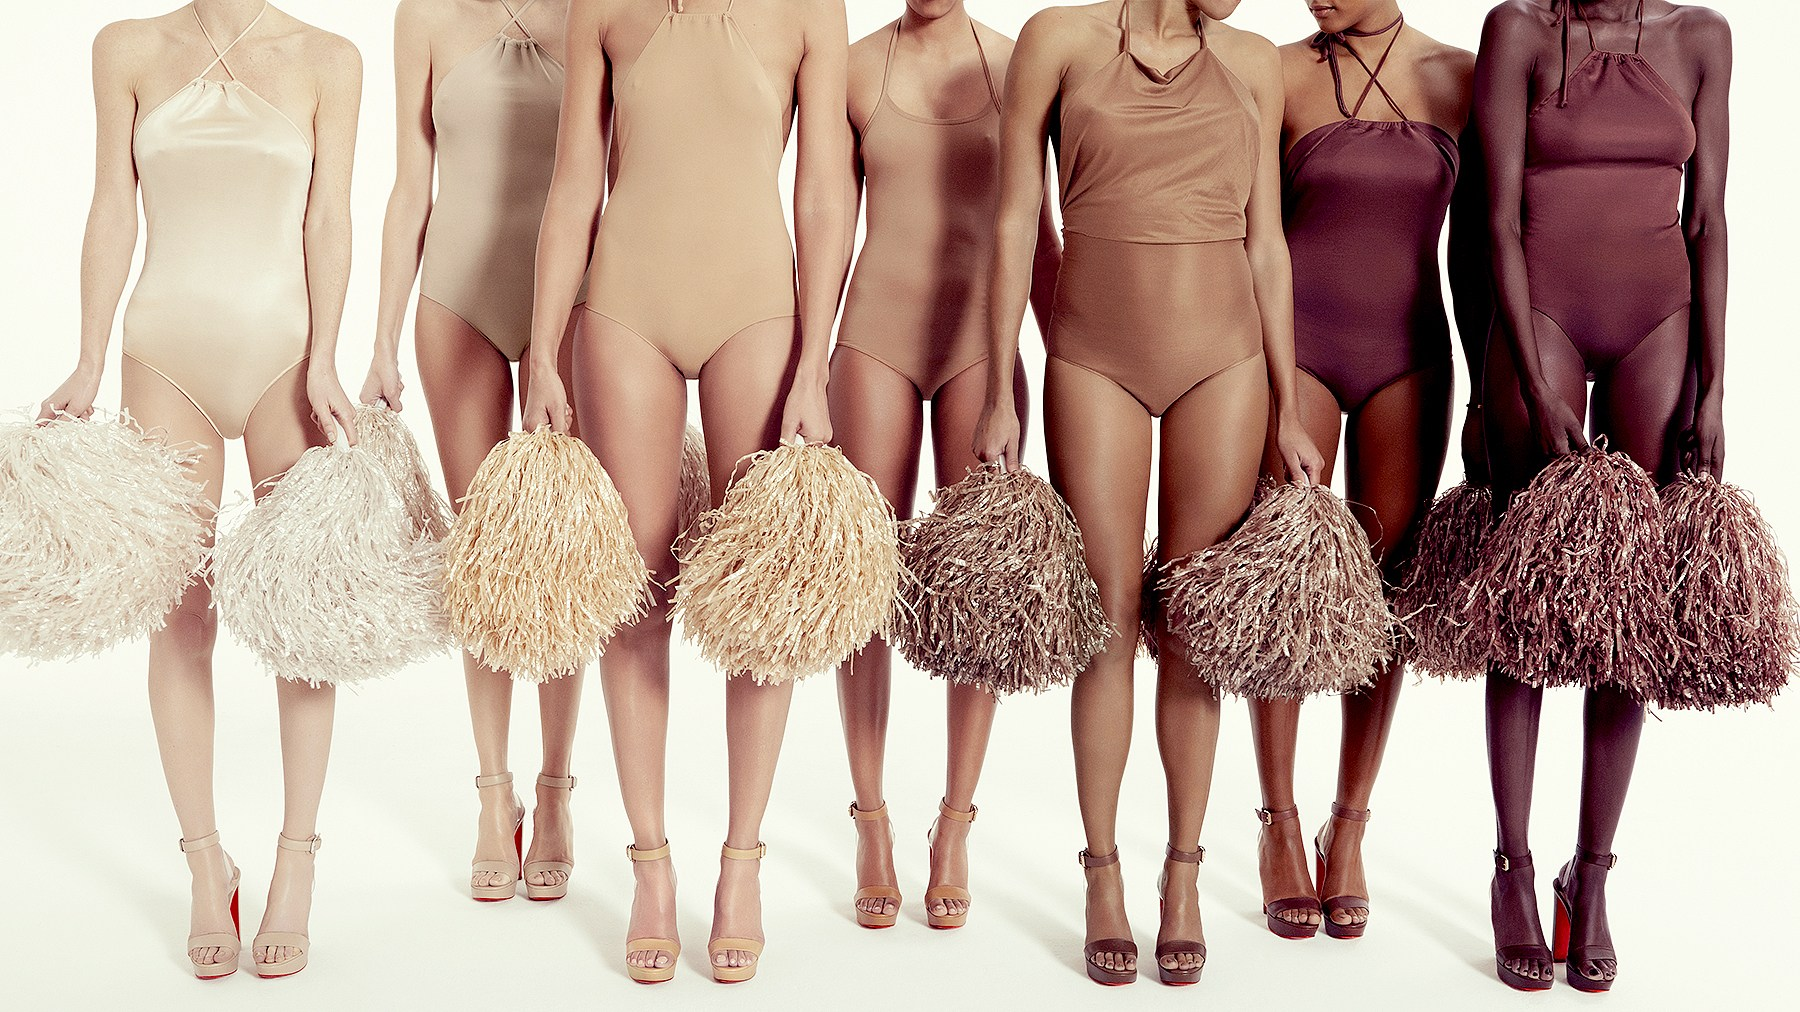 Christian Louboutin's Nudes Collection